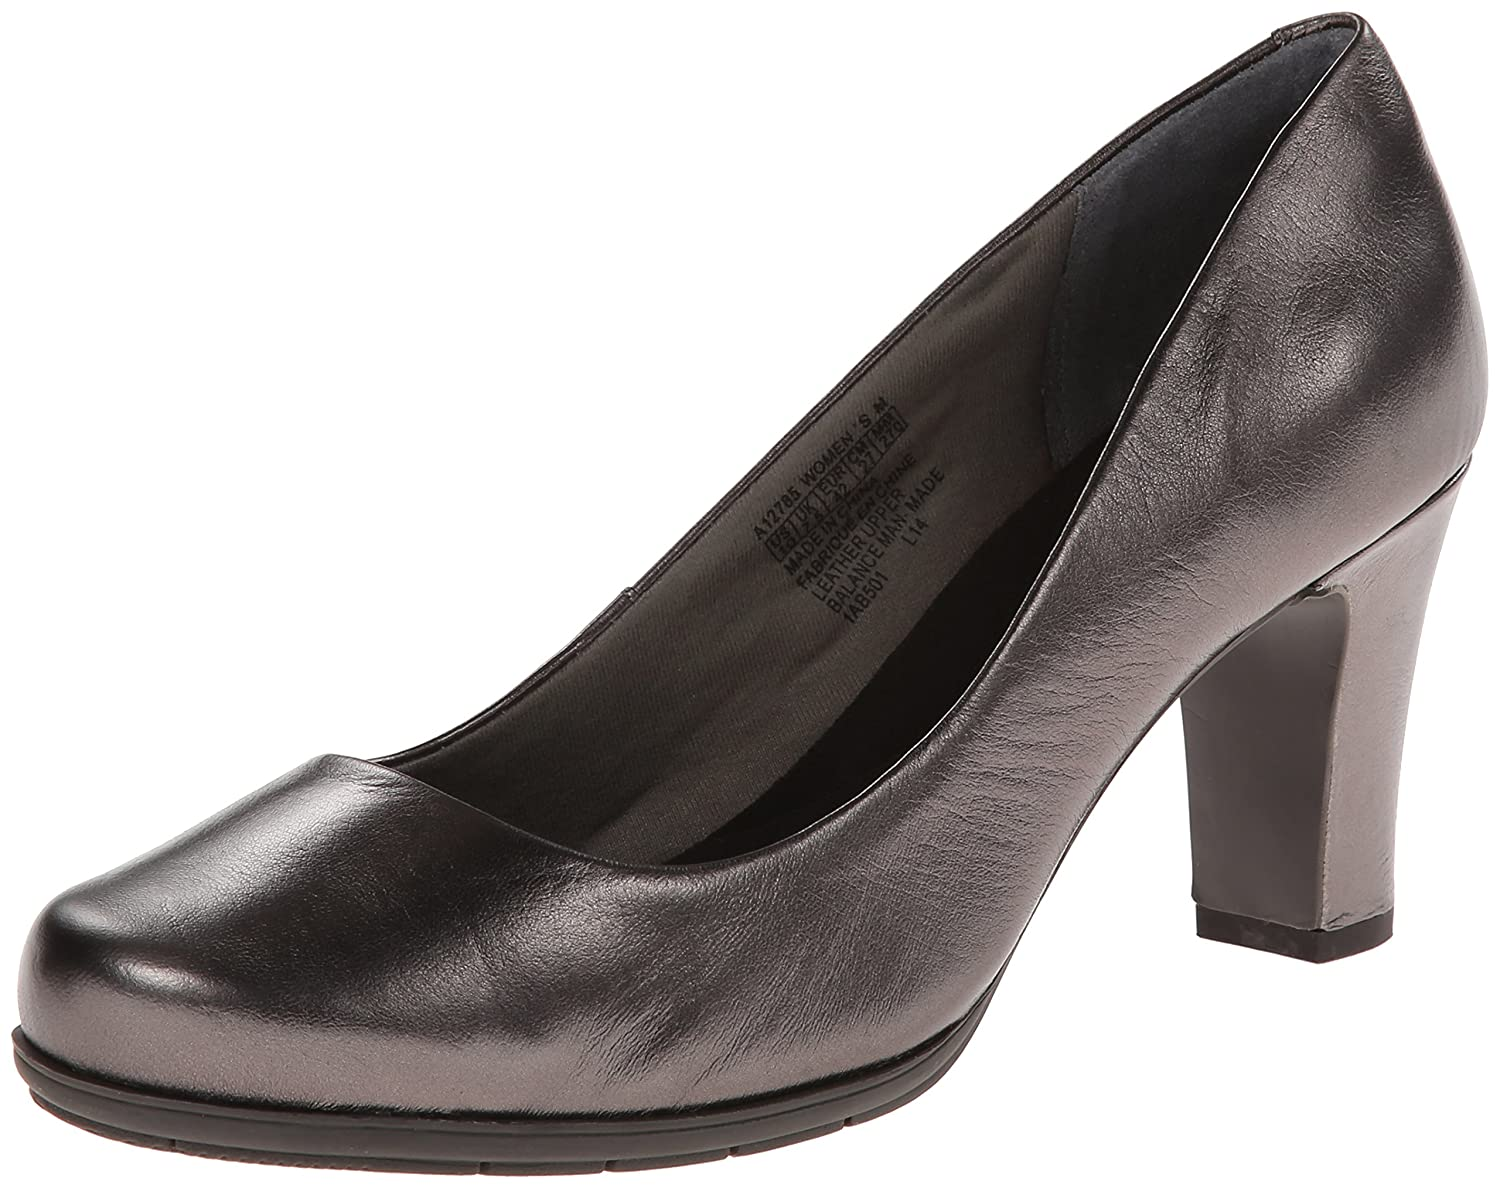 Pewter Smooth Leather Rockport Women's Total Motion Pump